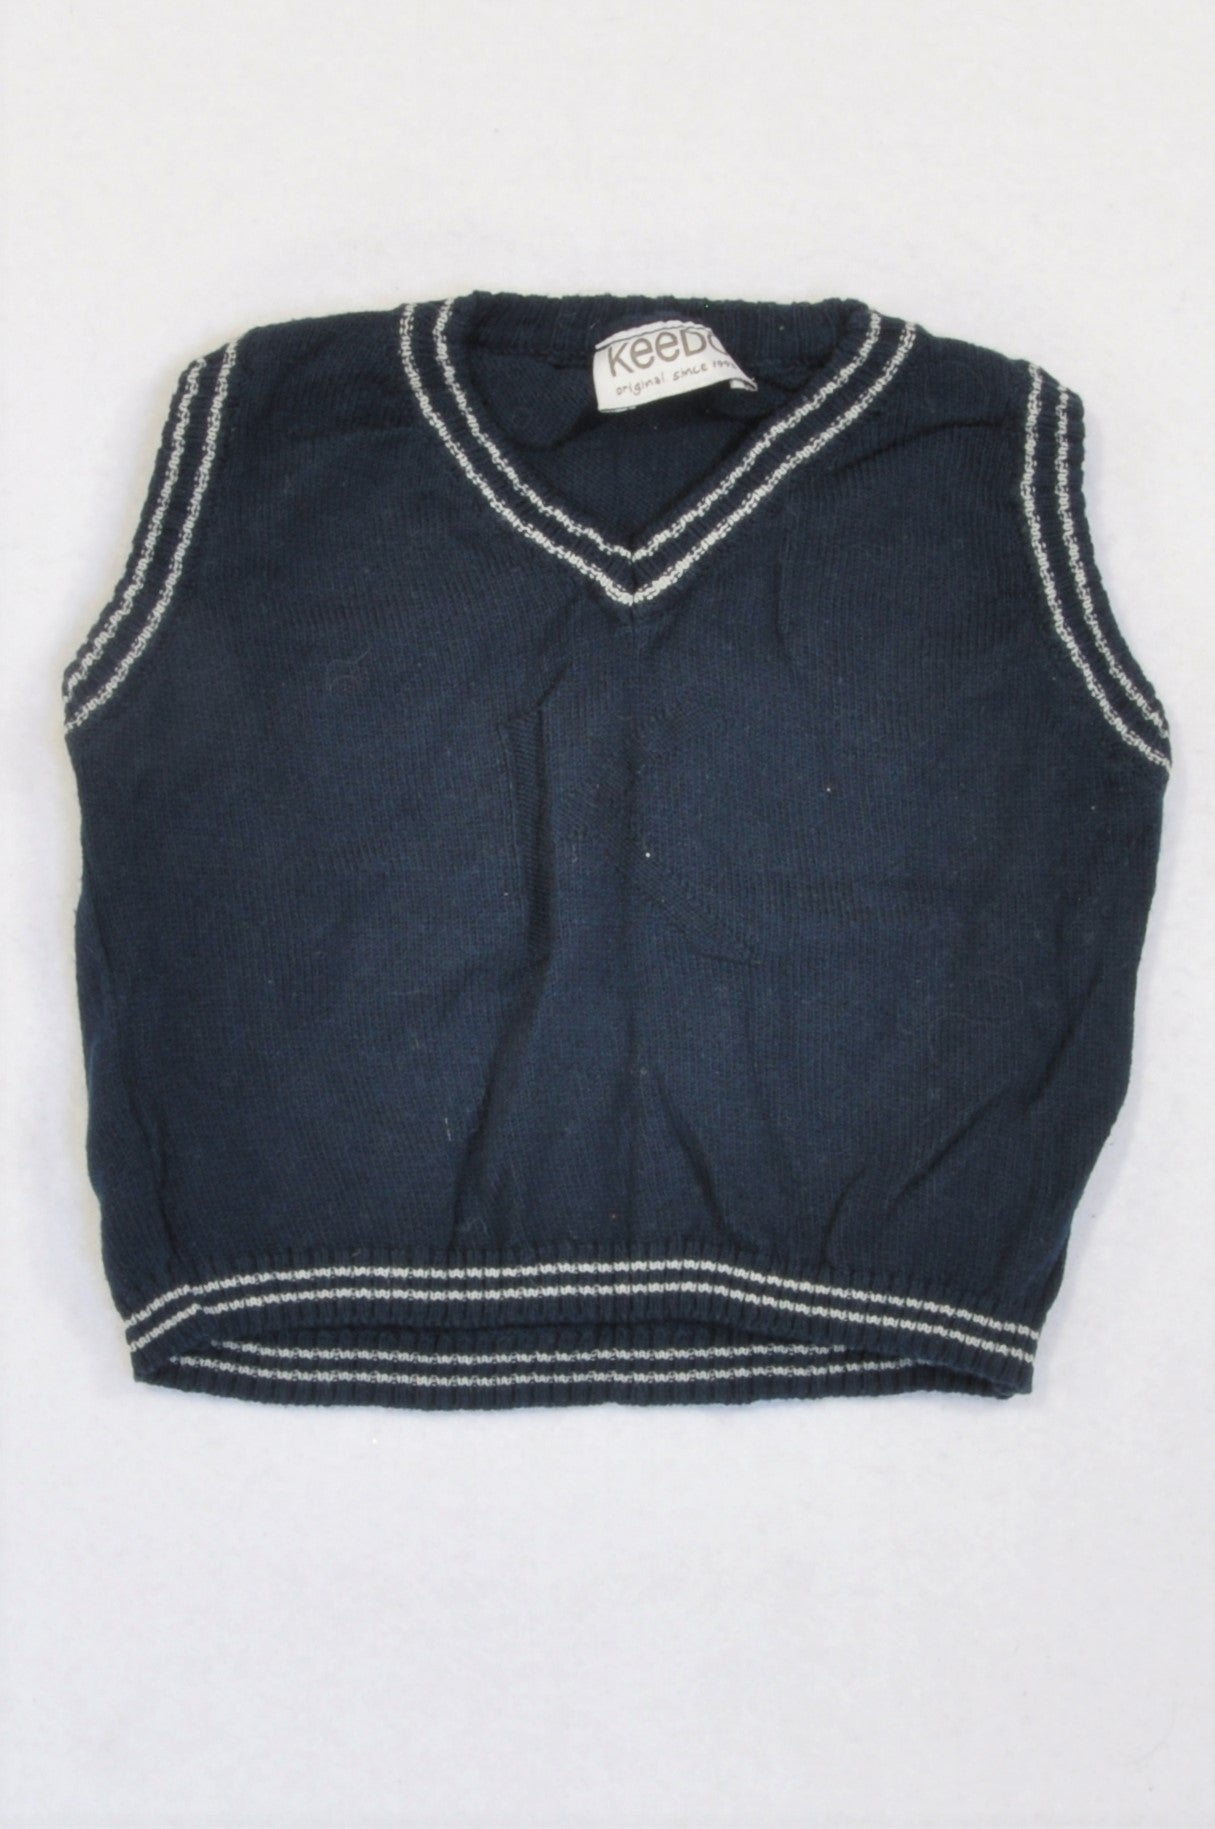 Keedo Navy Knit White Trim Body Warmer Boys 3-6 months